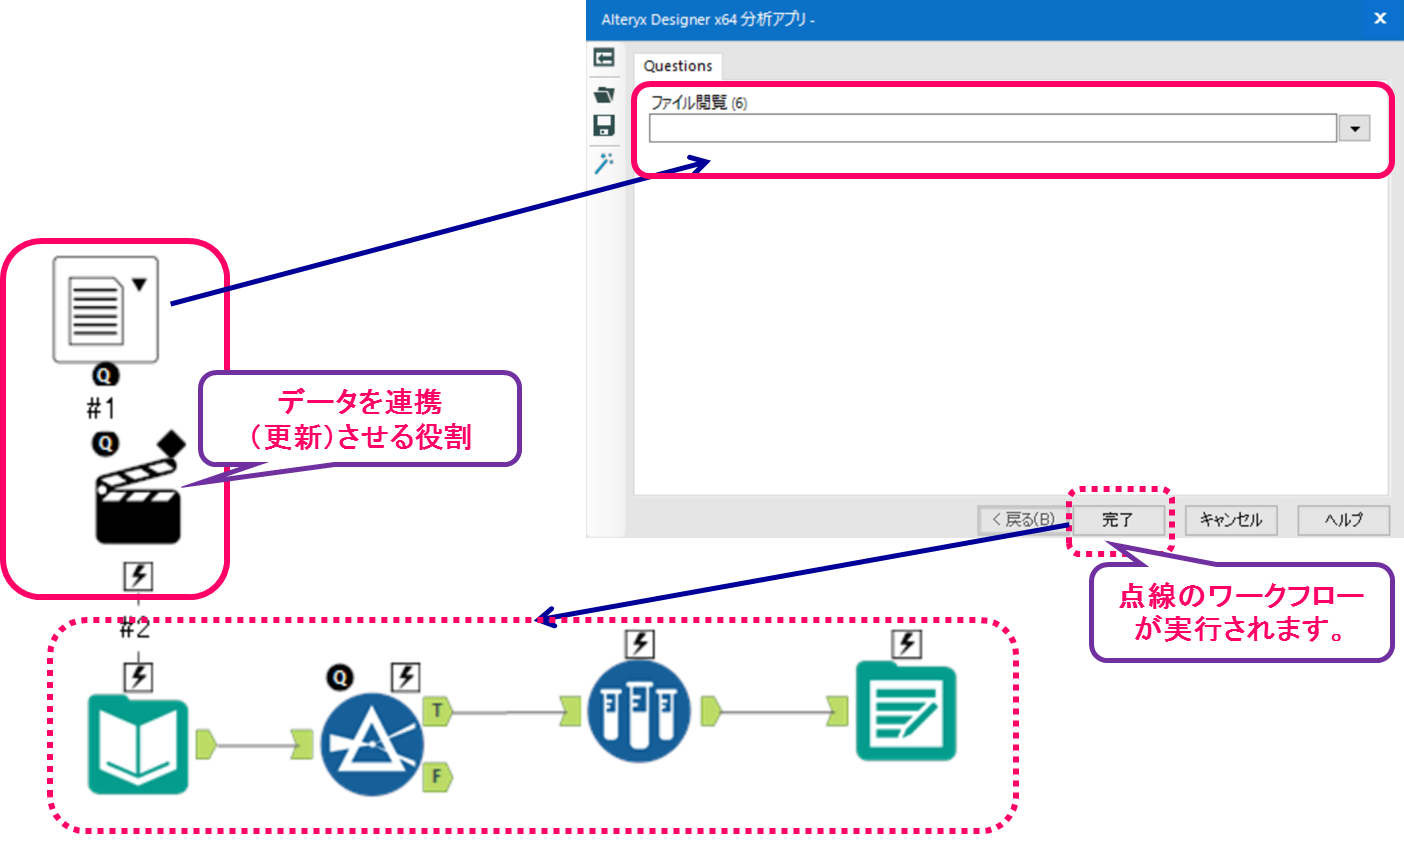 Alteryx analytic apps macro interface tool 説明